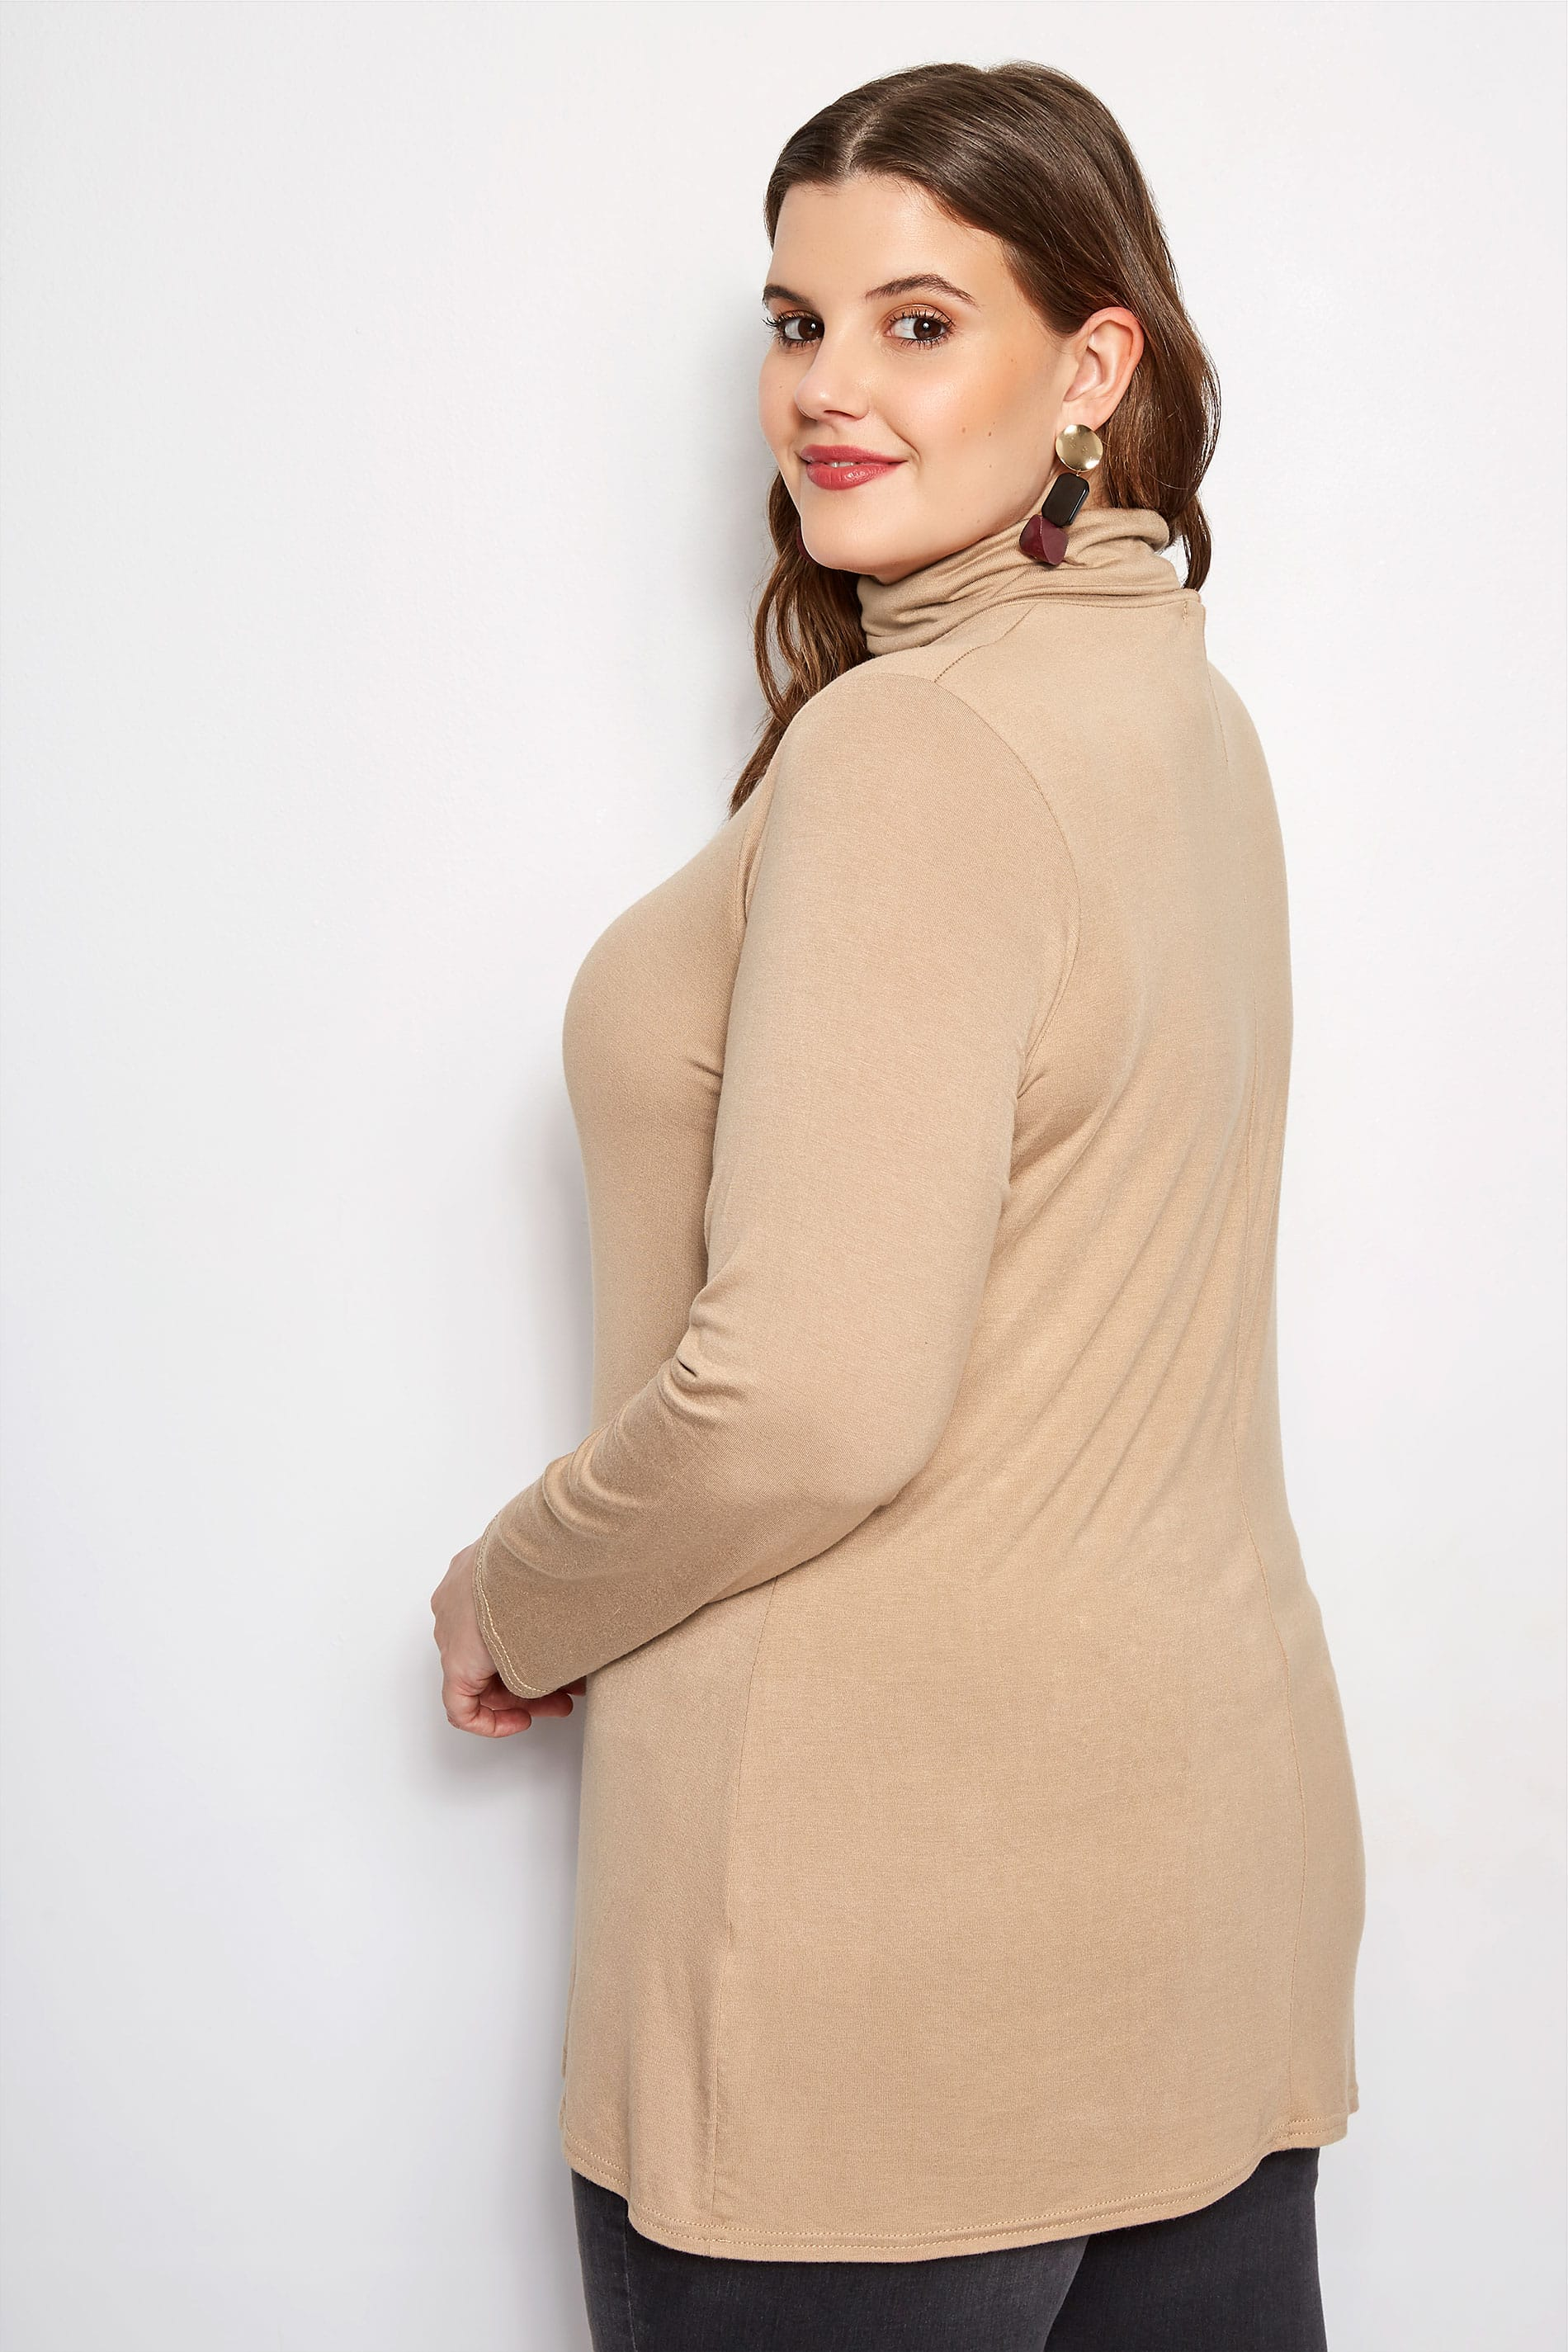 77a0dcb3dfea Plus Size Camel Turtleneck Top | Sizes 16 to 36 | Yours Clothing